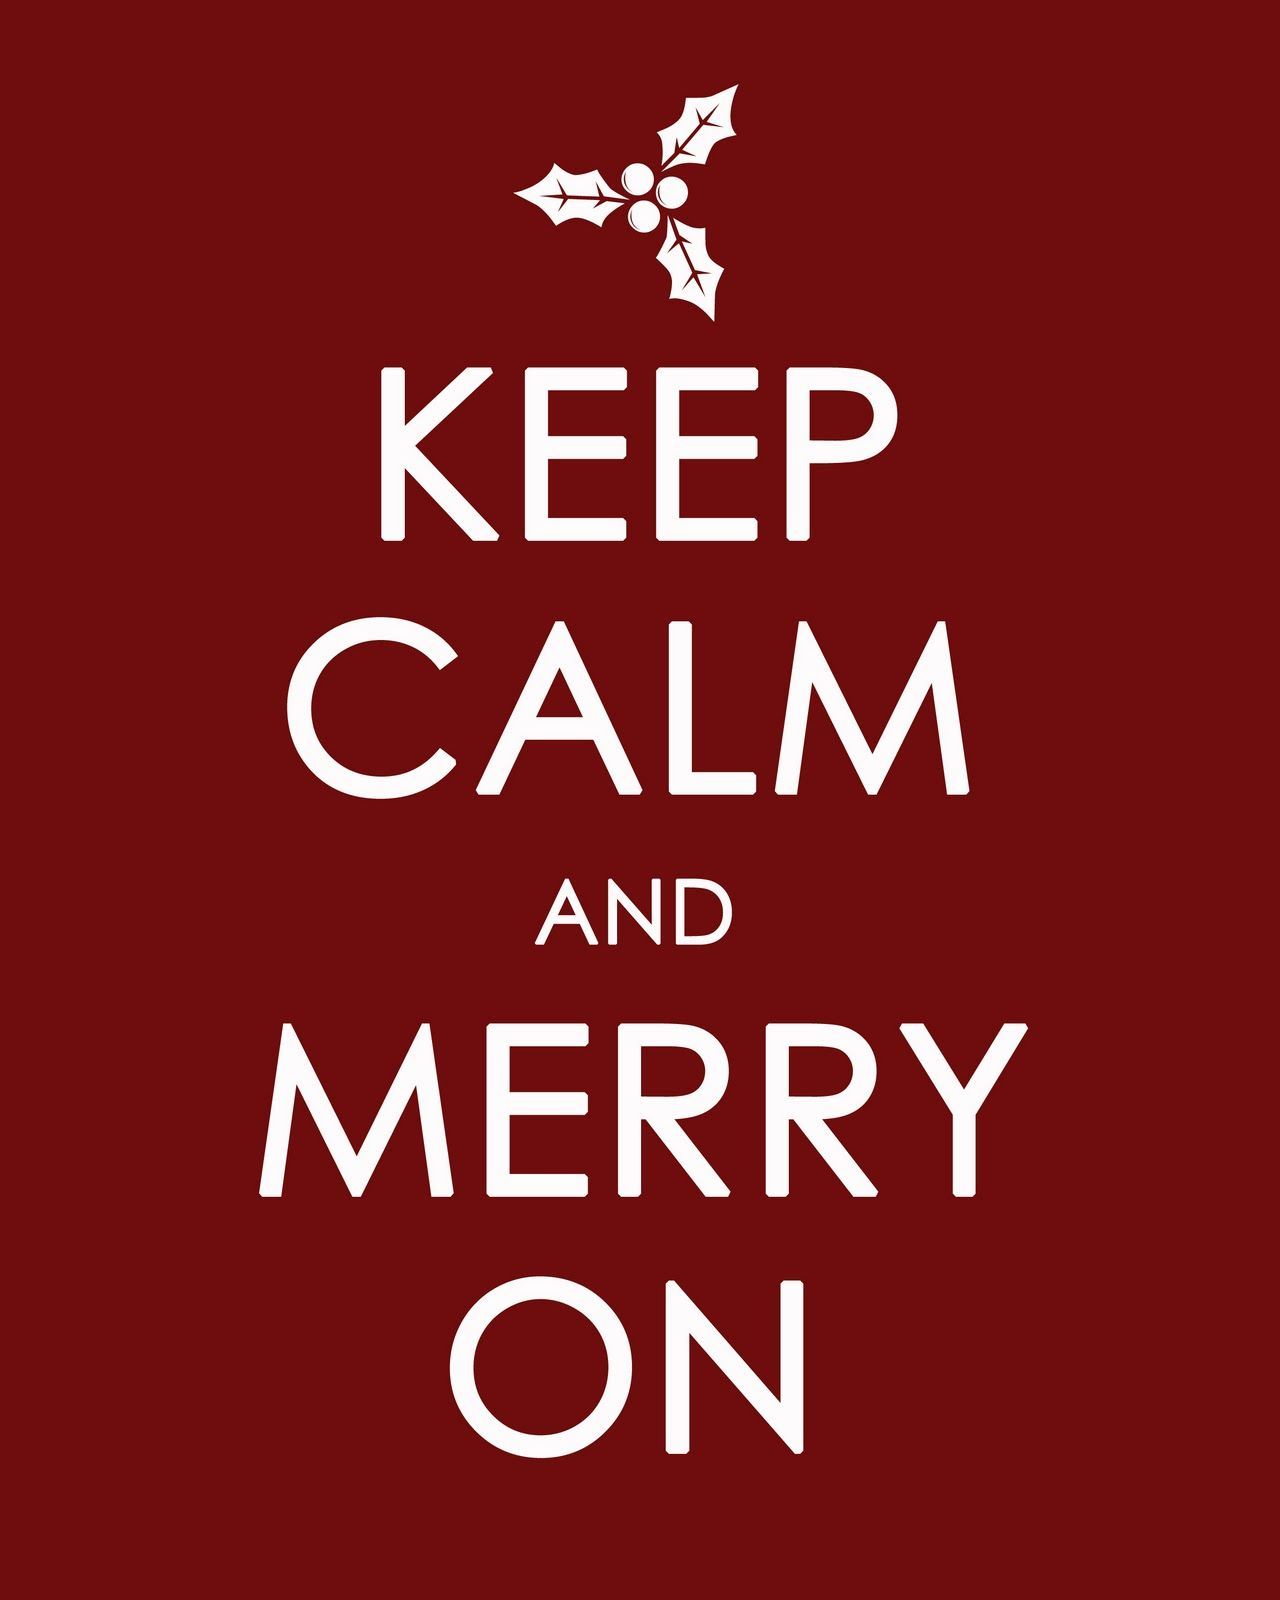 Free Christmas Printables! | Keep calm | Pinterest | Christmas ...